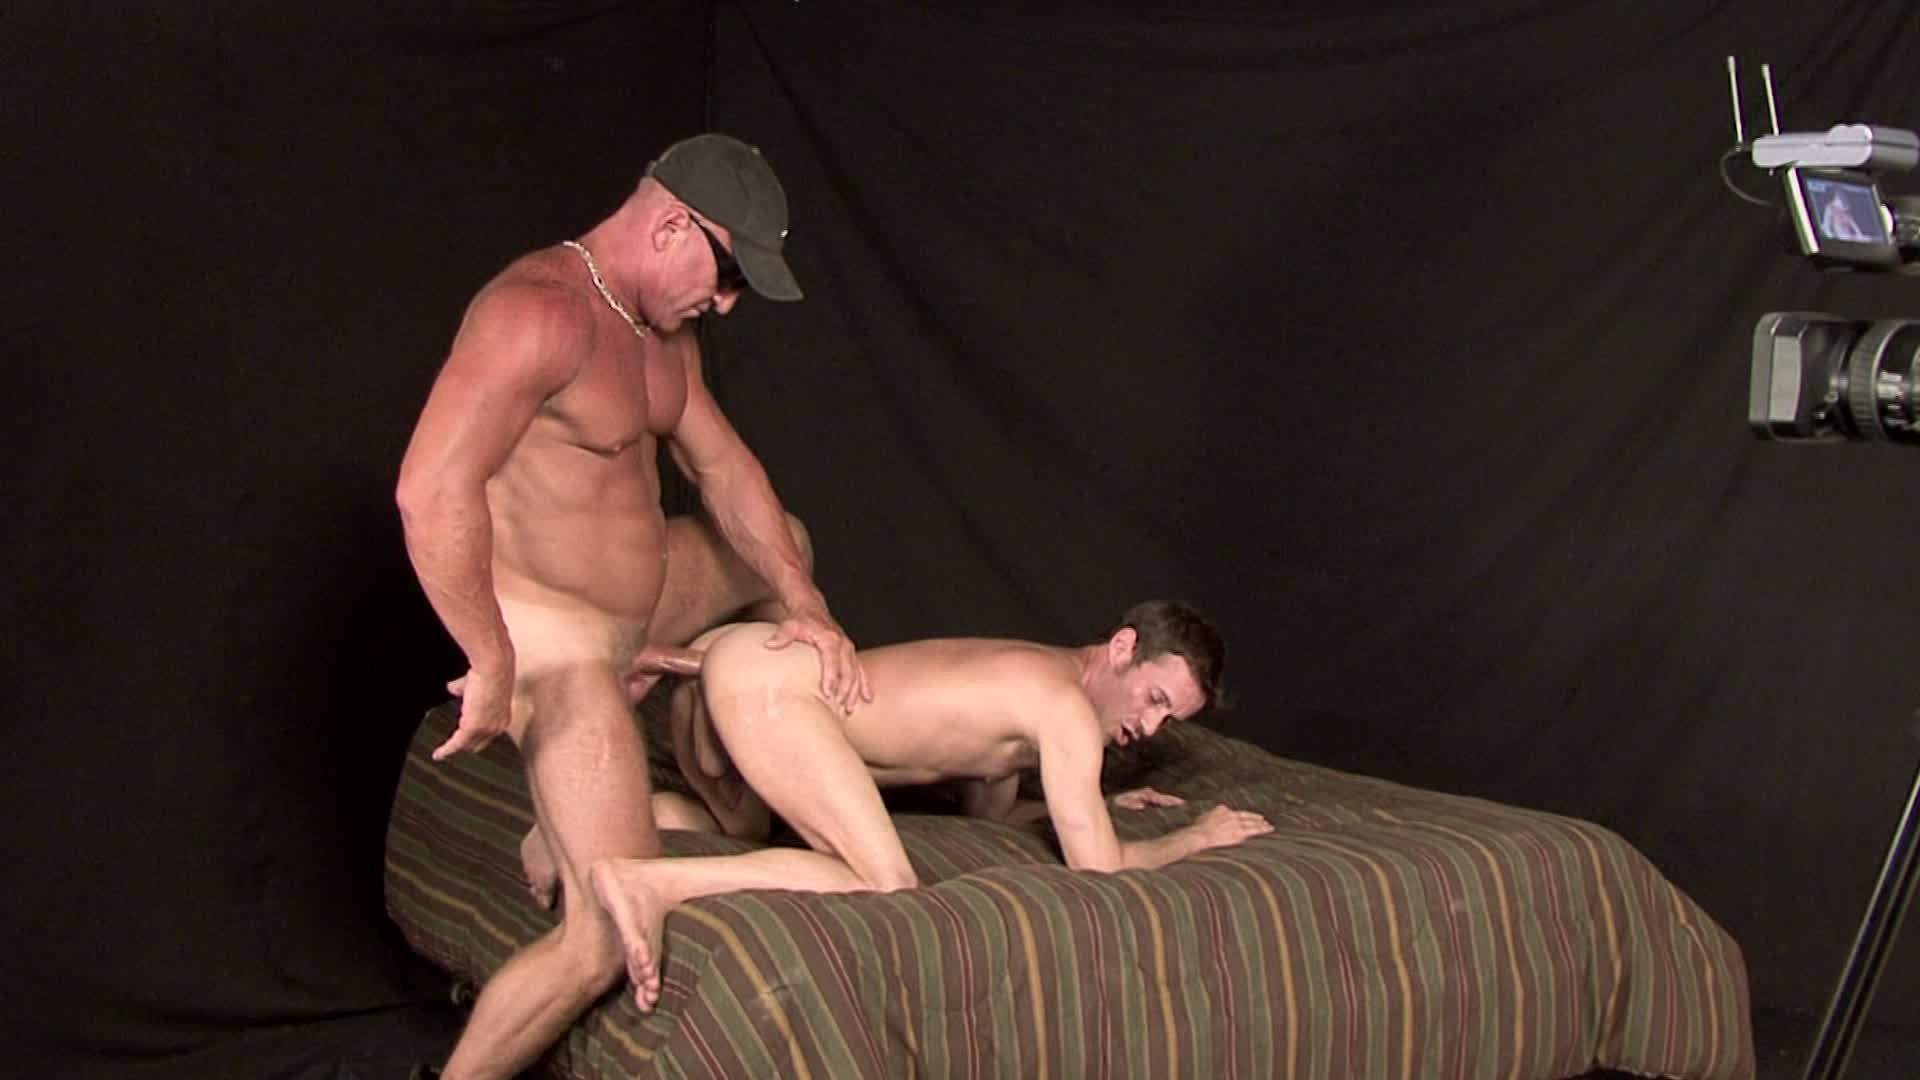 image Straight male cumshot gay round ass on the